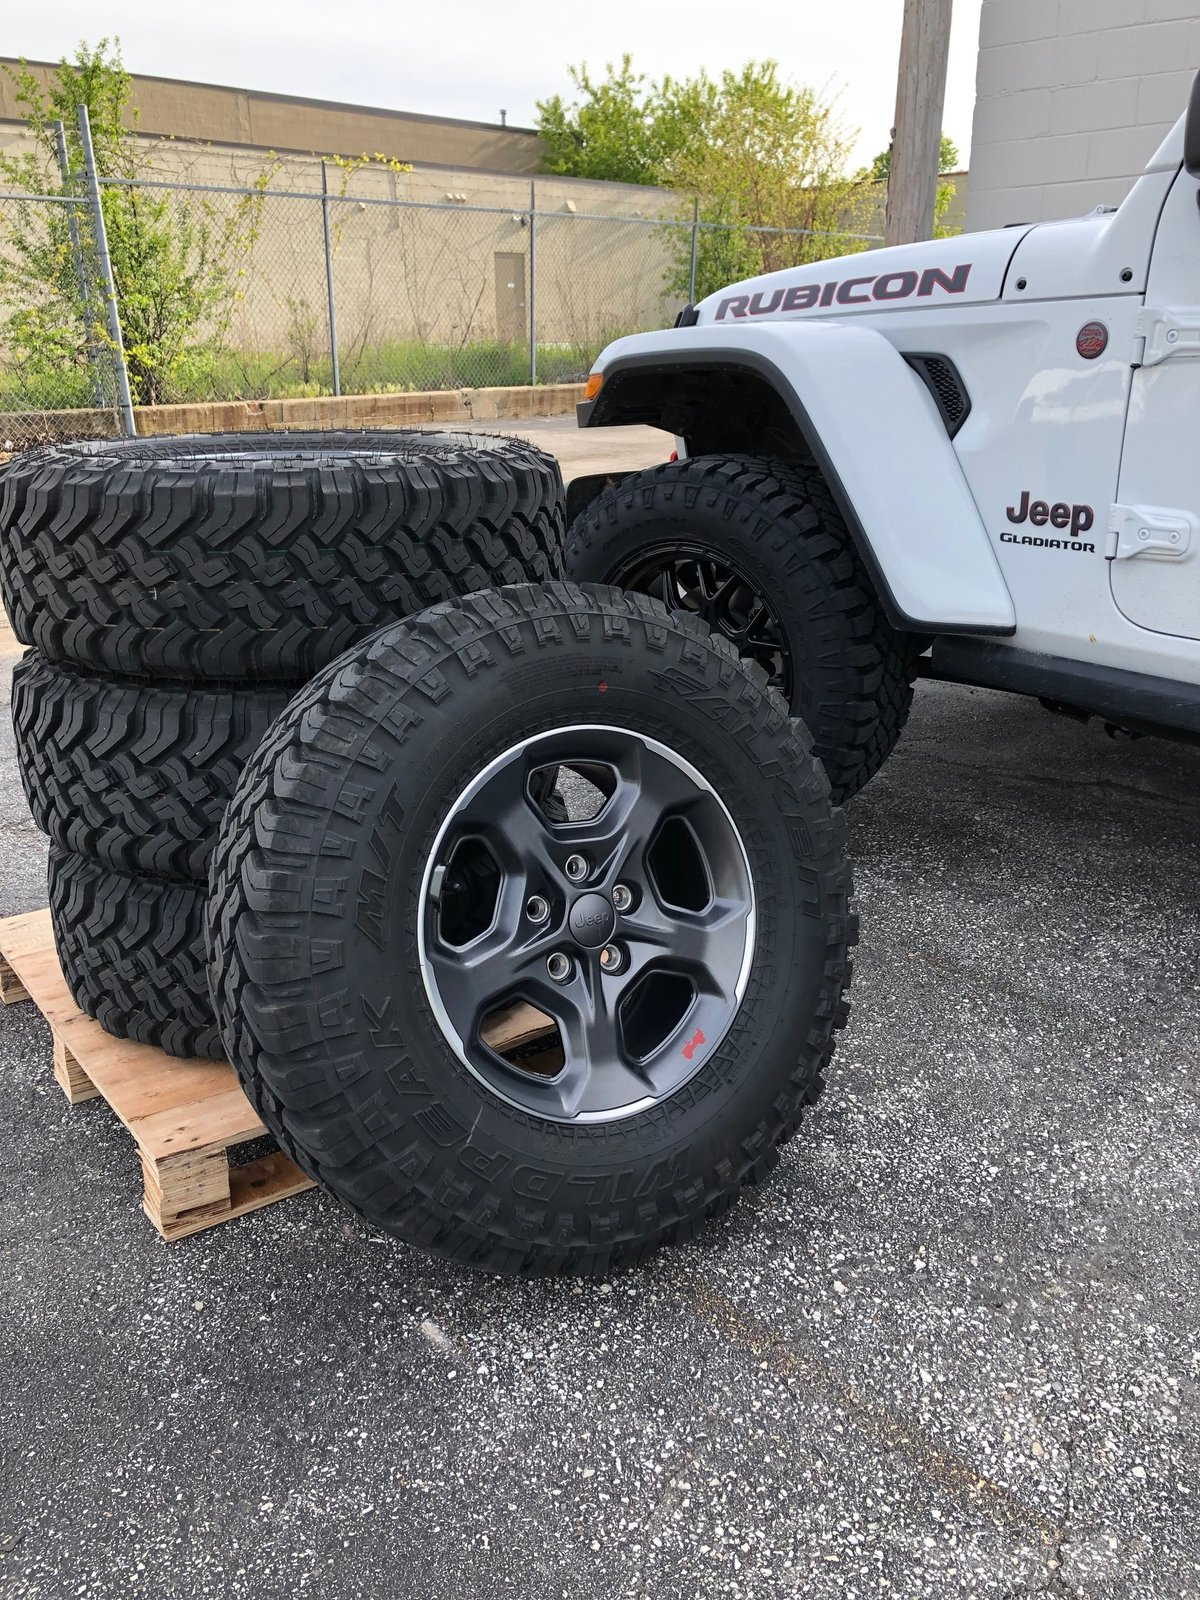 33 Tires On 17 Rims : tires, Wisconsin, Rubicon, Takeoff, Rims,, Falken, Wildpeak, Tires, Sensors, Gladiator, Forum, JeepGladiatorForum.com